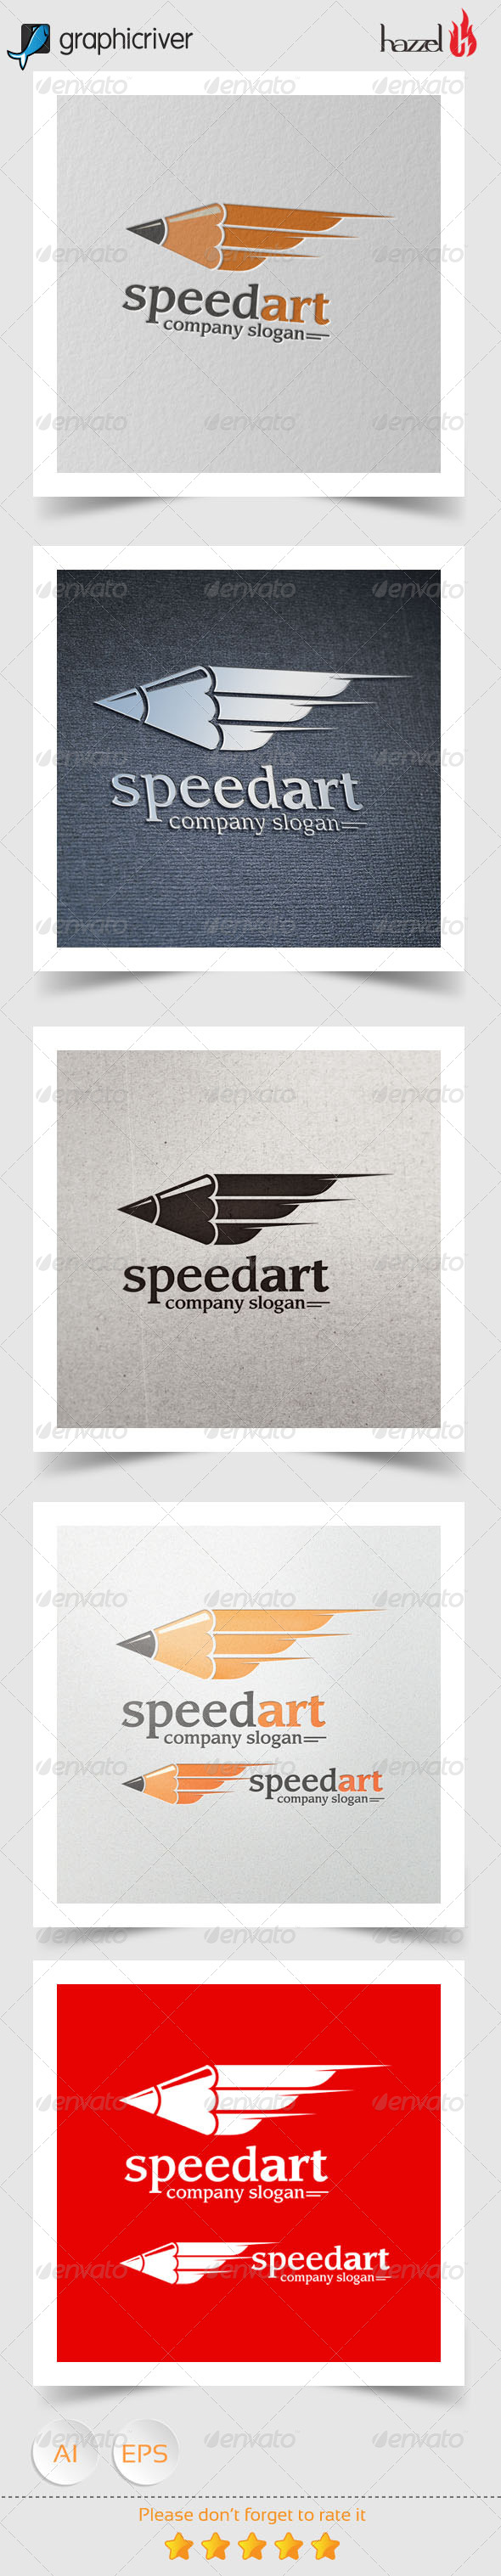 Speed Art Logo